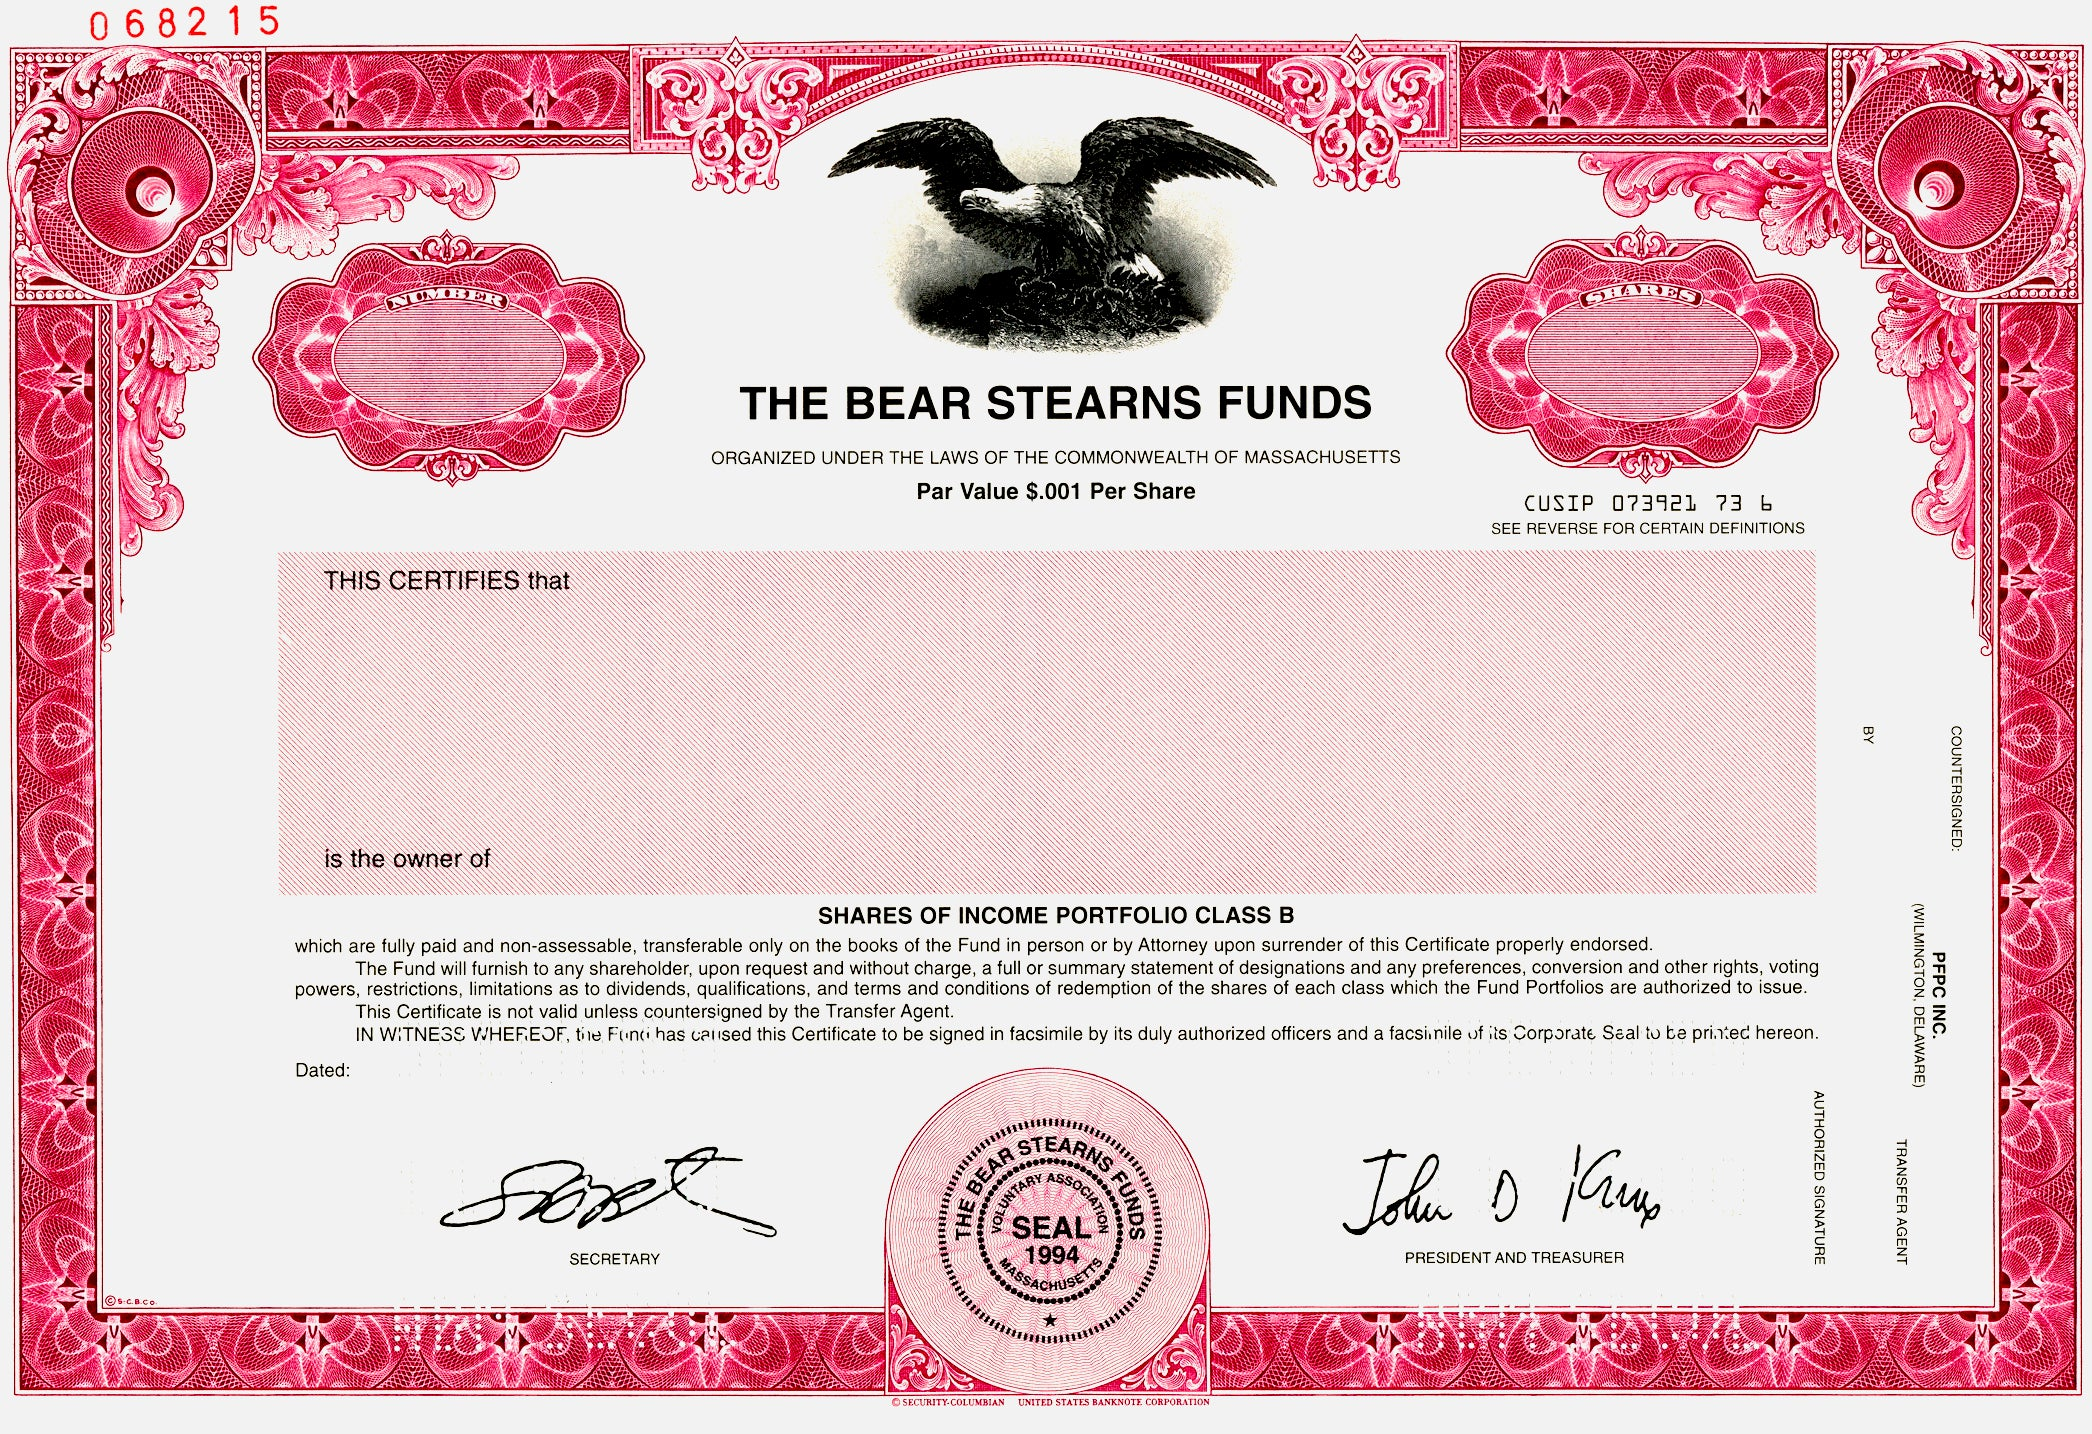 Bear Stearns Funds Specimen Stock Certificate - 2000 - Wall Street Treasures